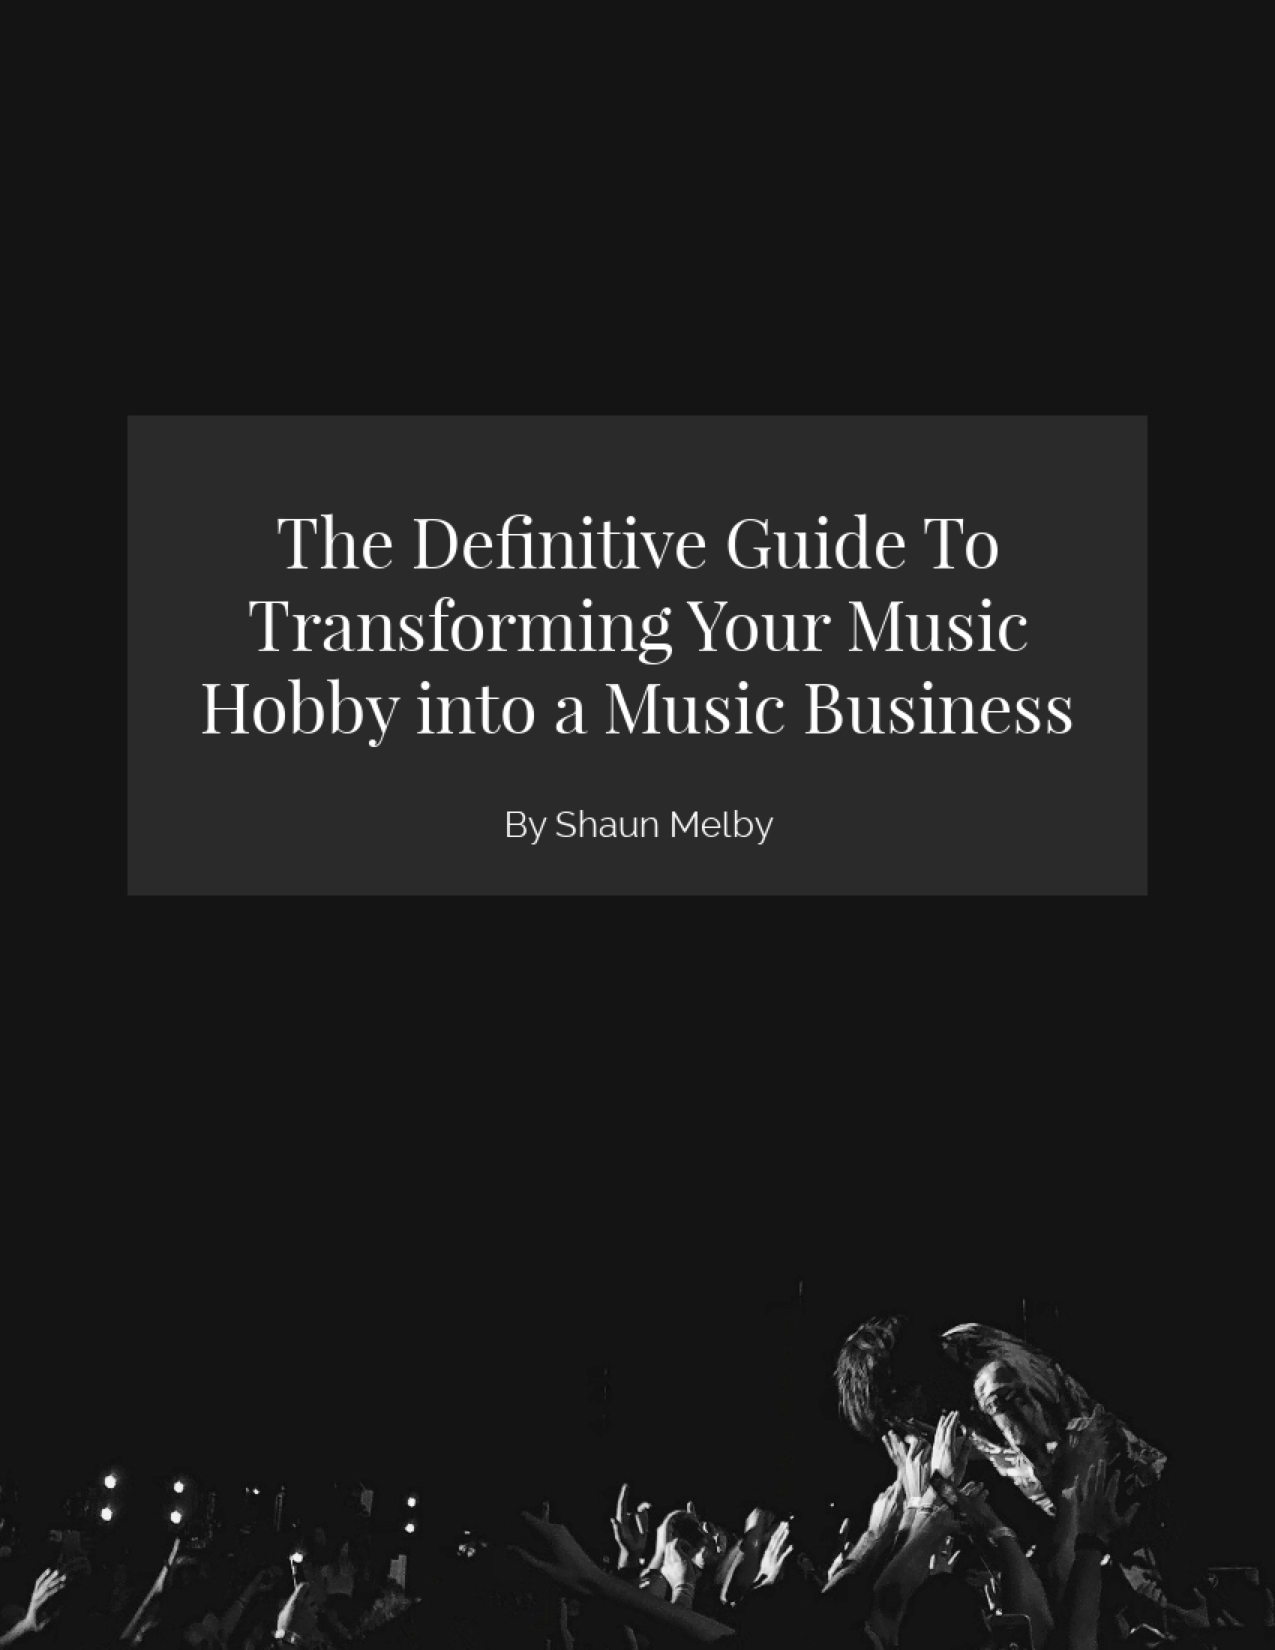 Definitive Guide To Transforming Your Music Hobby Into A Music Business - cover.jpg